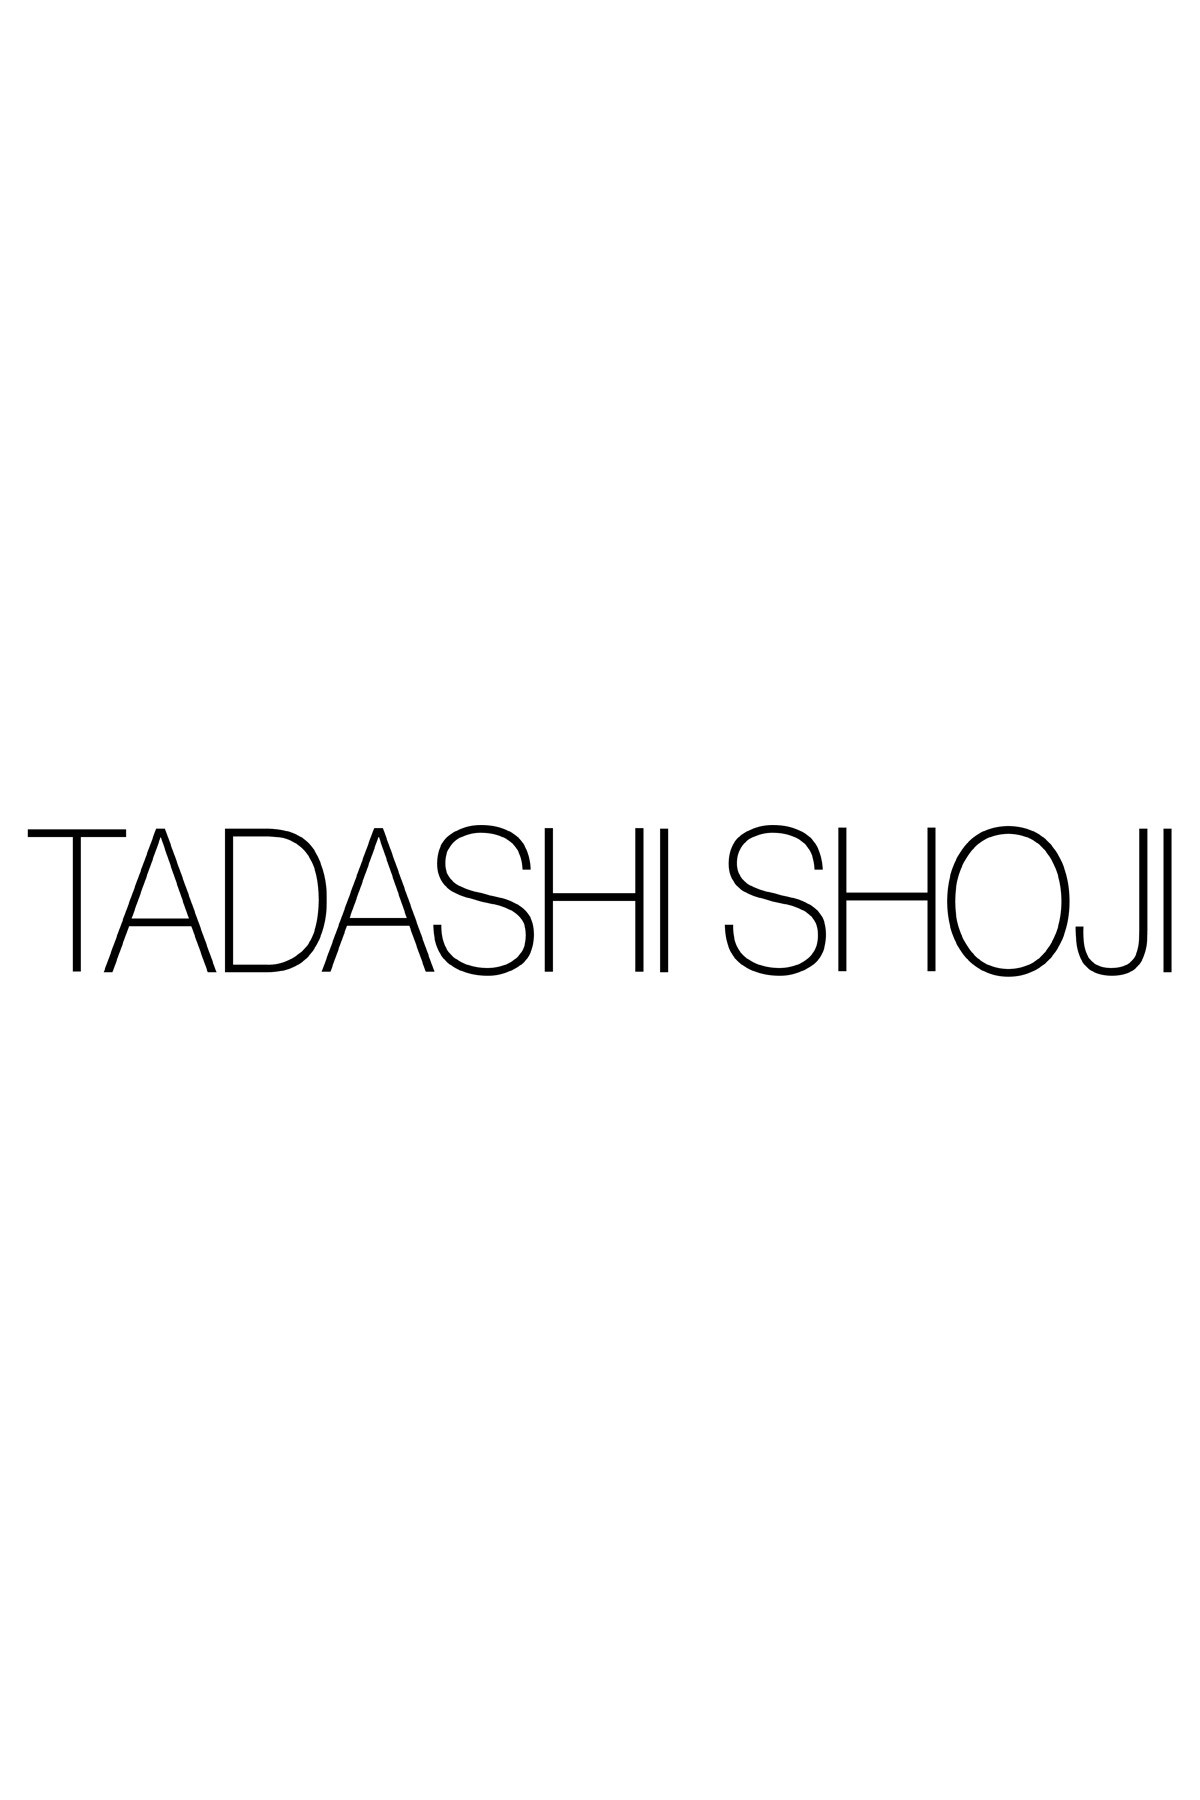 Tadashi Shoji - Corded Embroidery on Tulle V-Neck Banded Dress - Detail